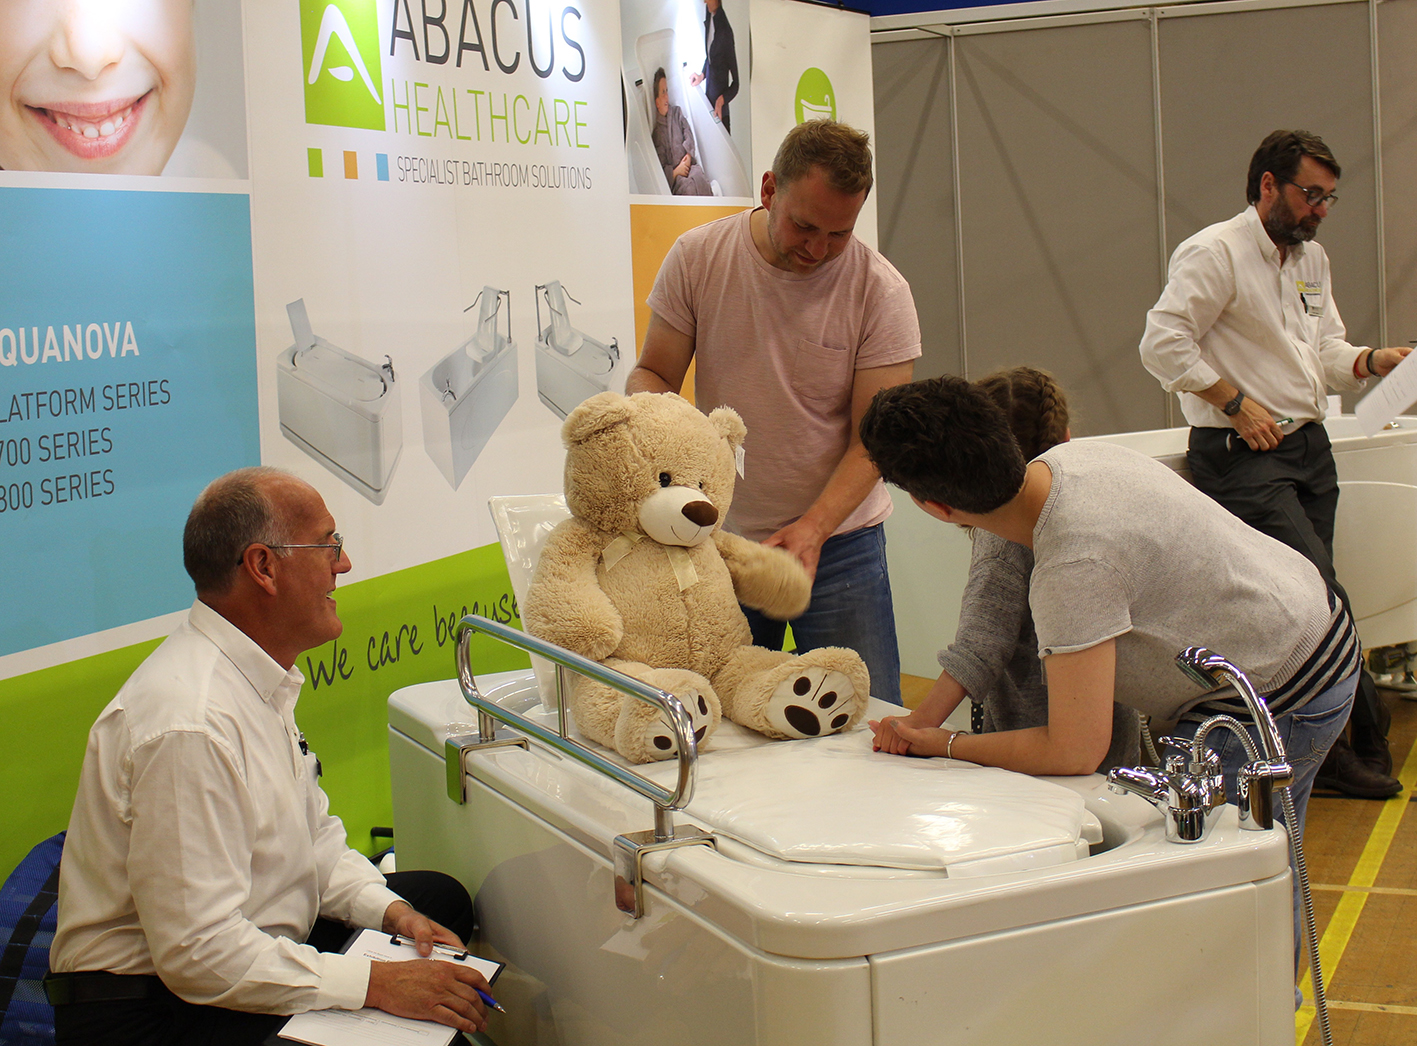 Abacus Healthcare to demonstrate Hi-Lo baths & children's competition at Kidz to Adultz Wales